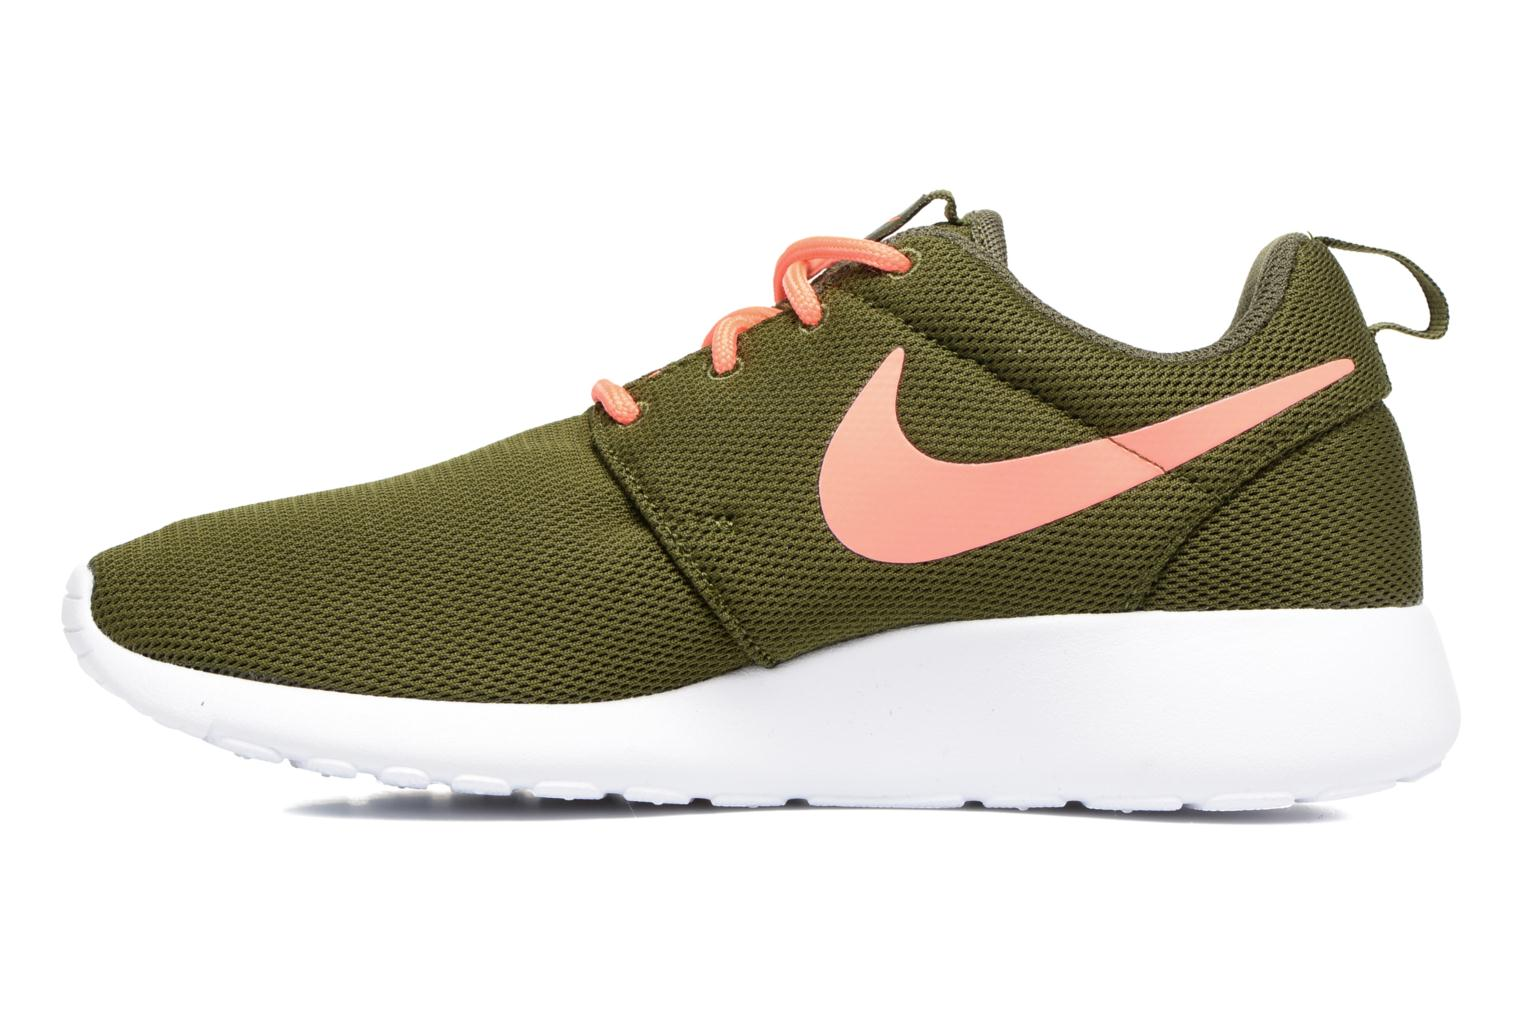 Wmns Nike Roshe One Legion Green/Lava Glow-White